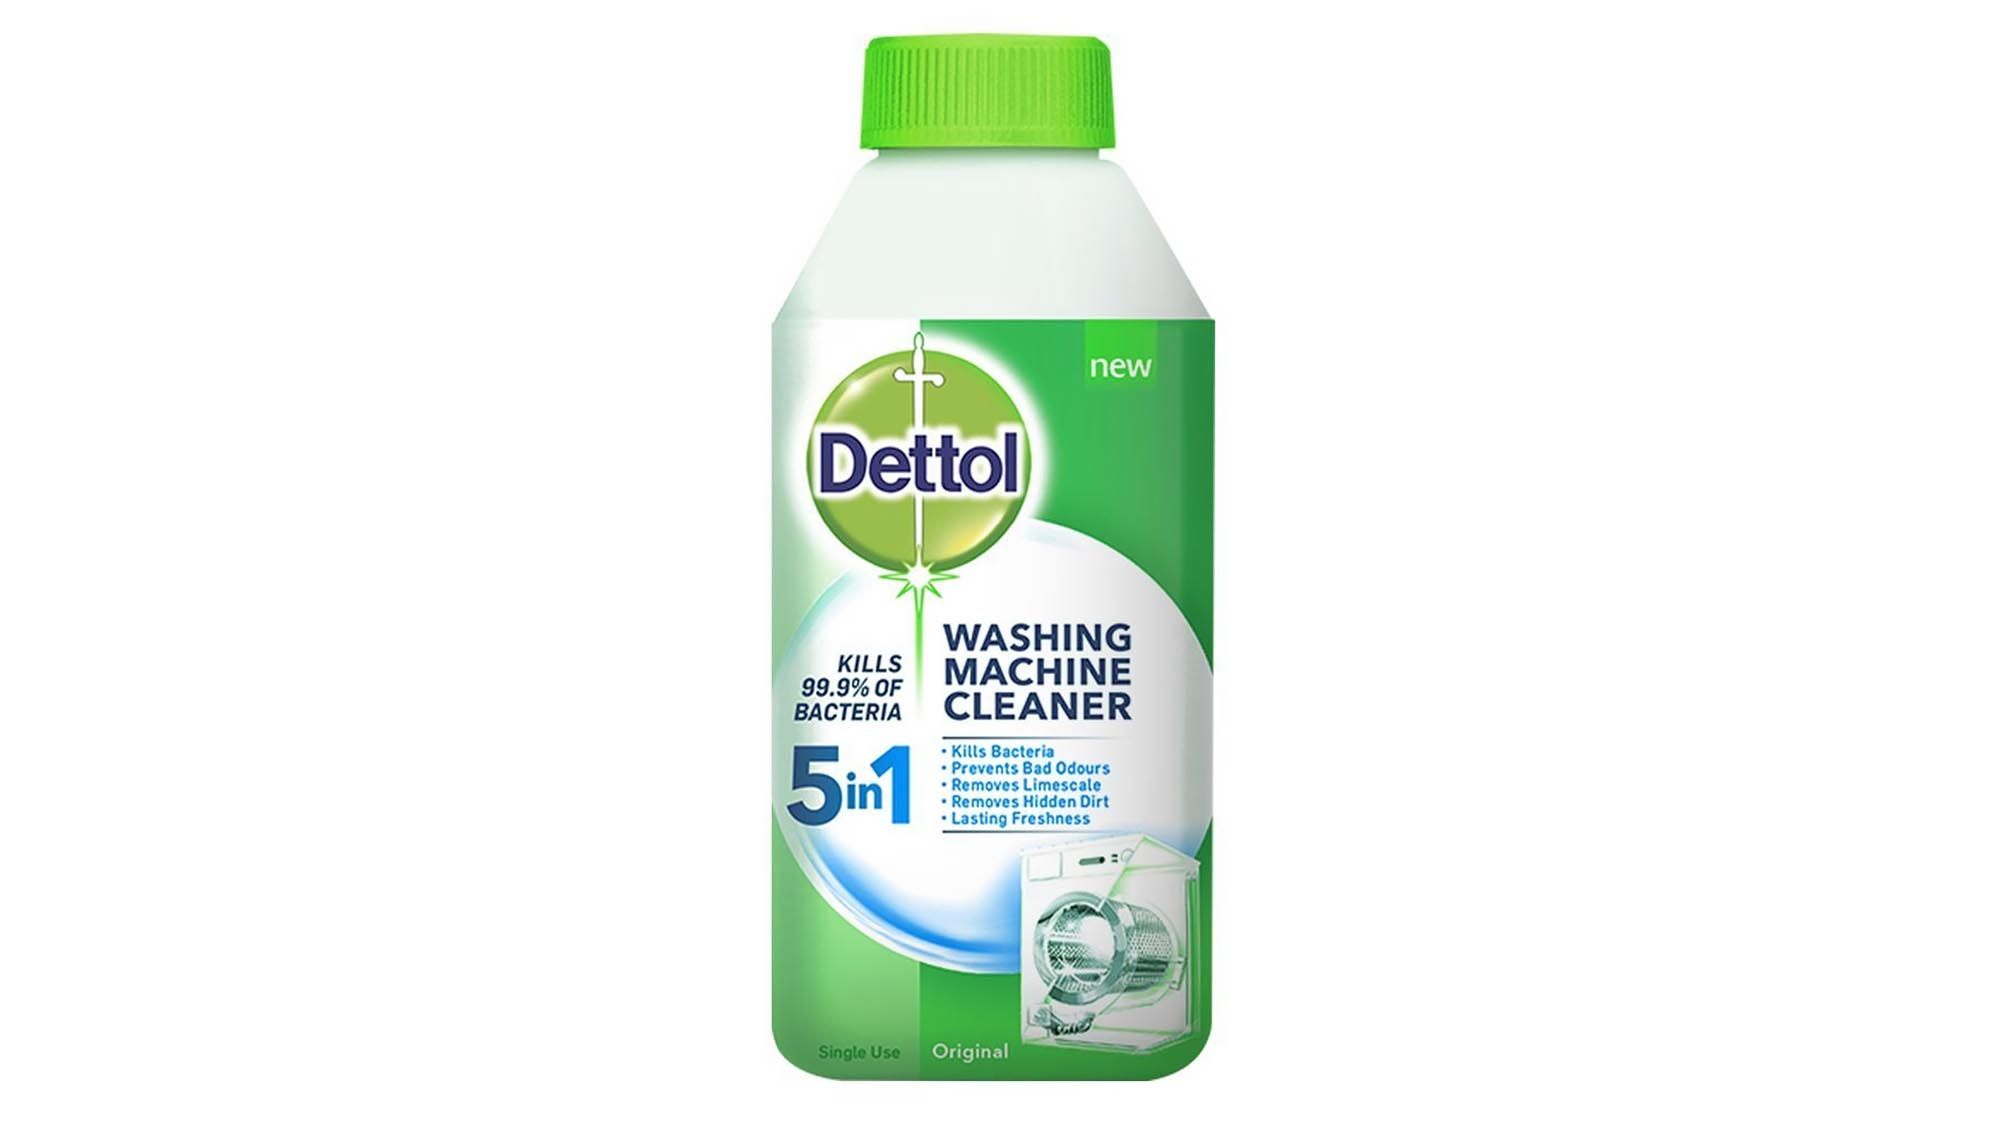 One Of Many Washing Machine Cleaners On The Market, This